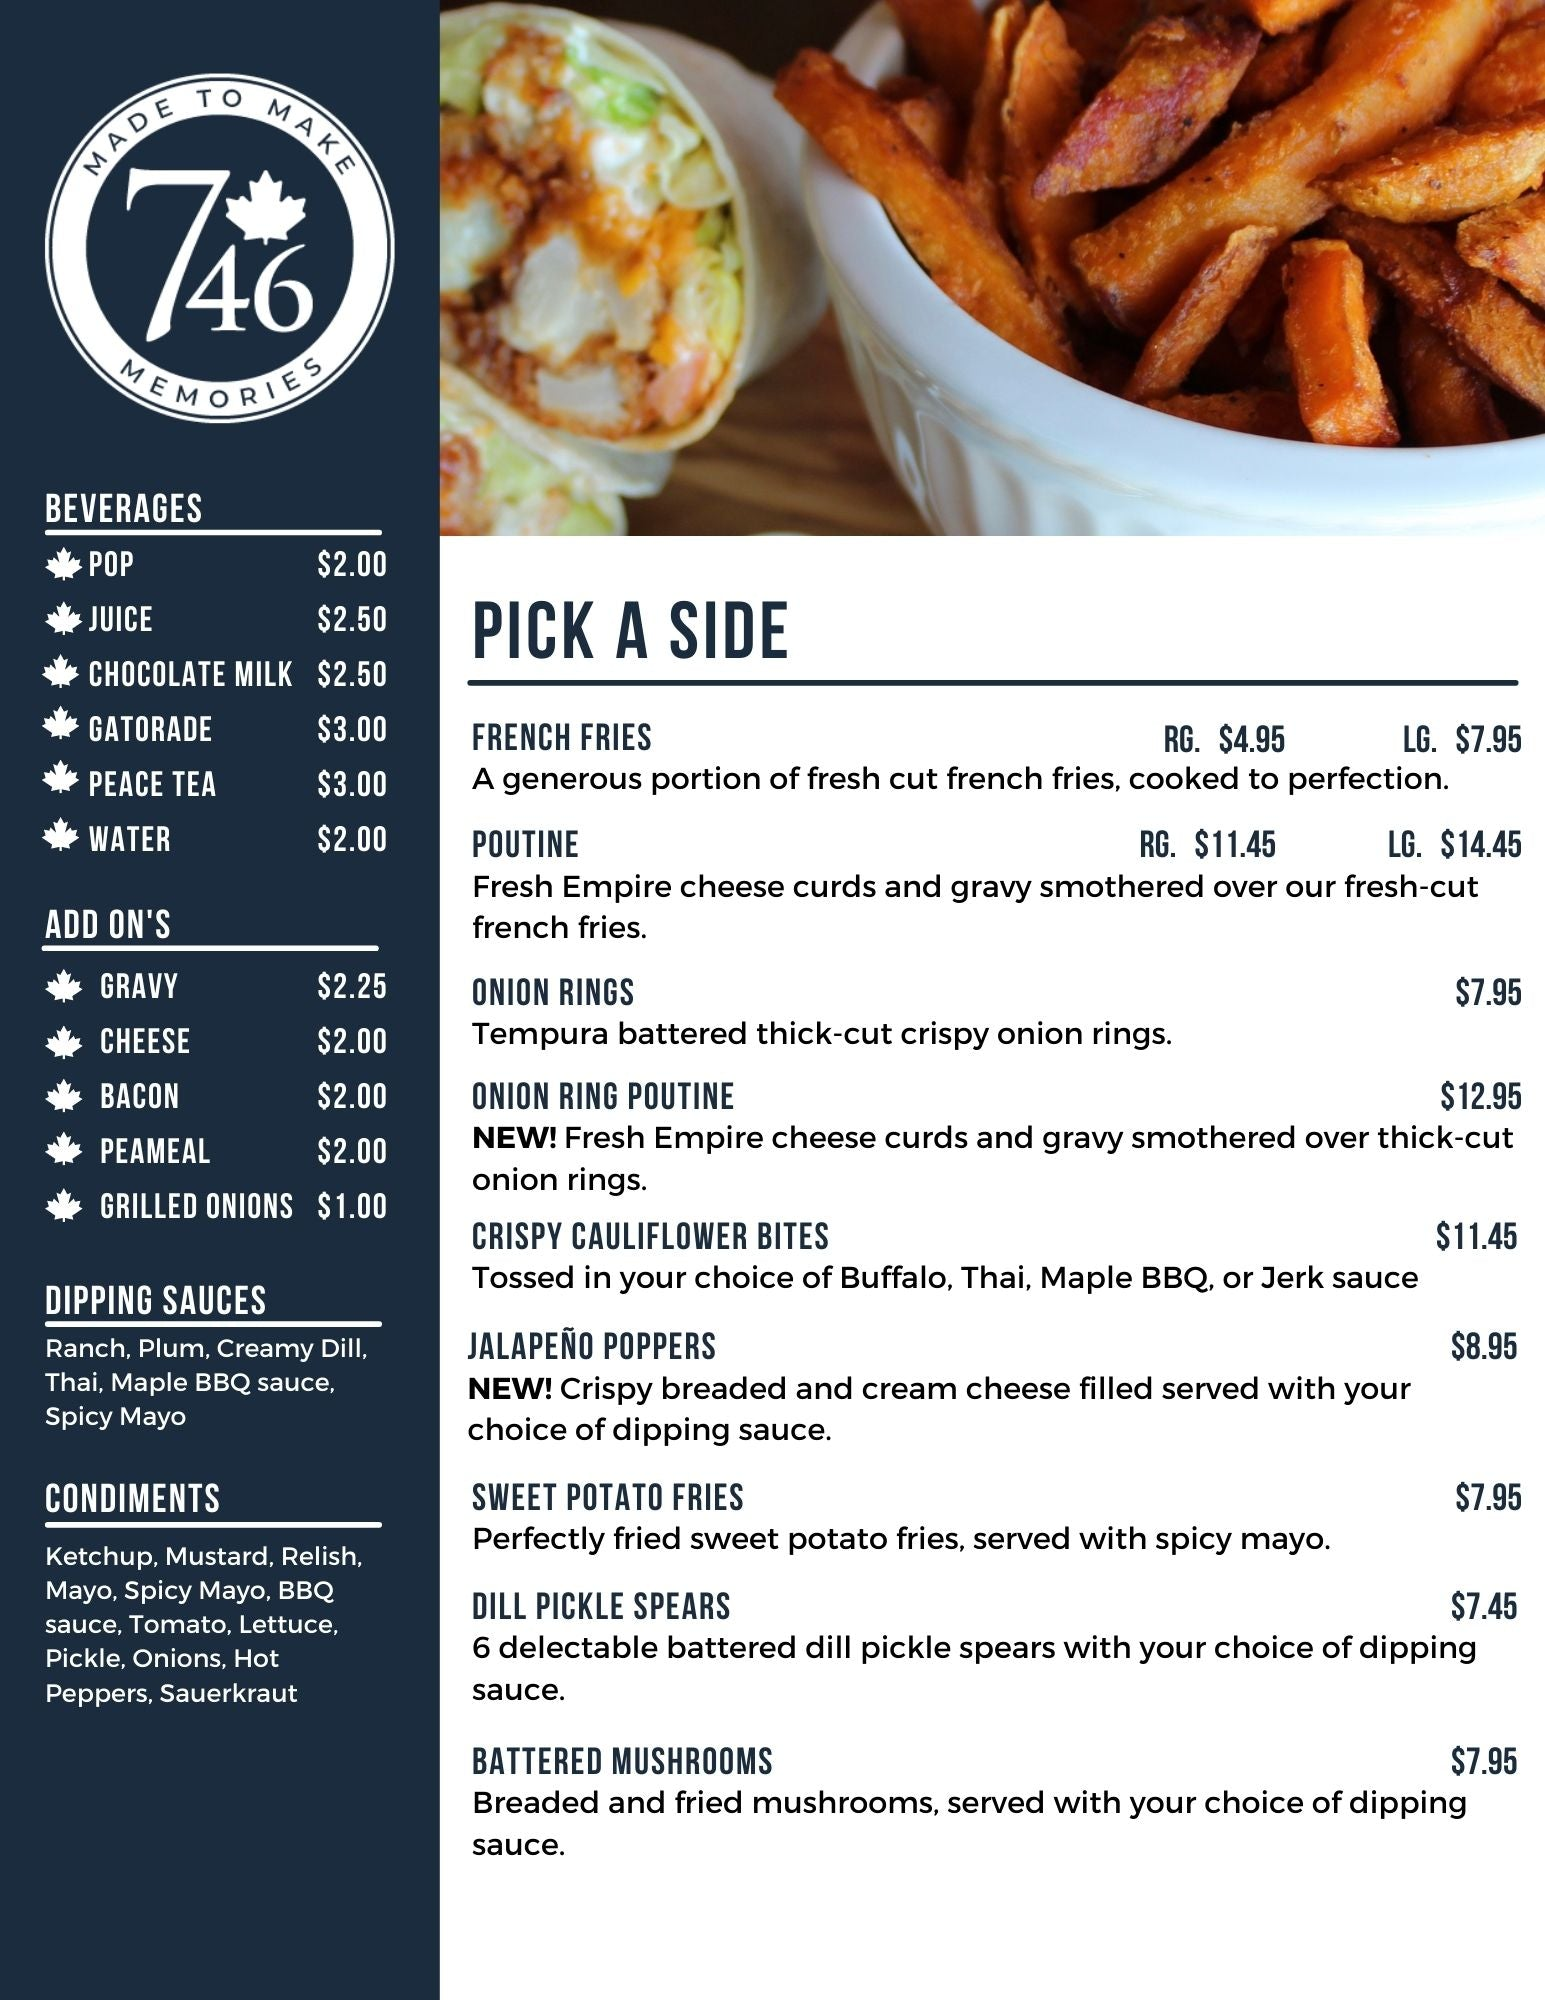 746 Food Truck - Sides and Appetizers